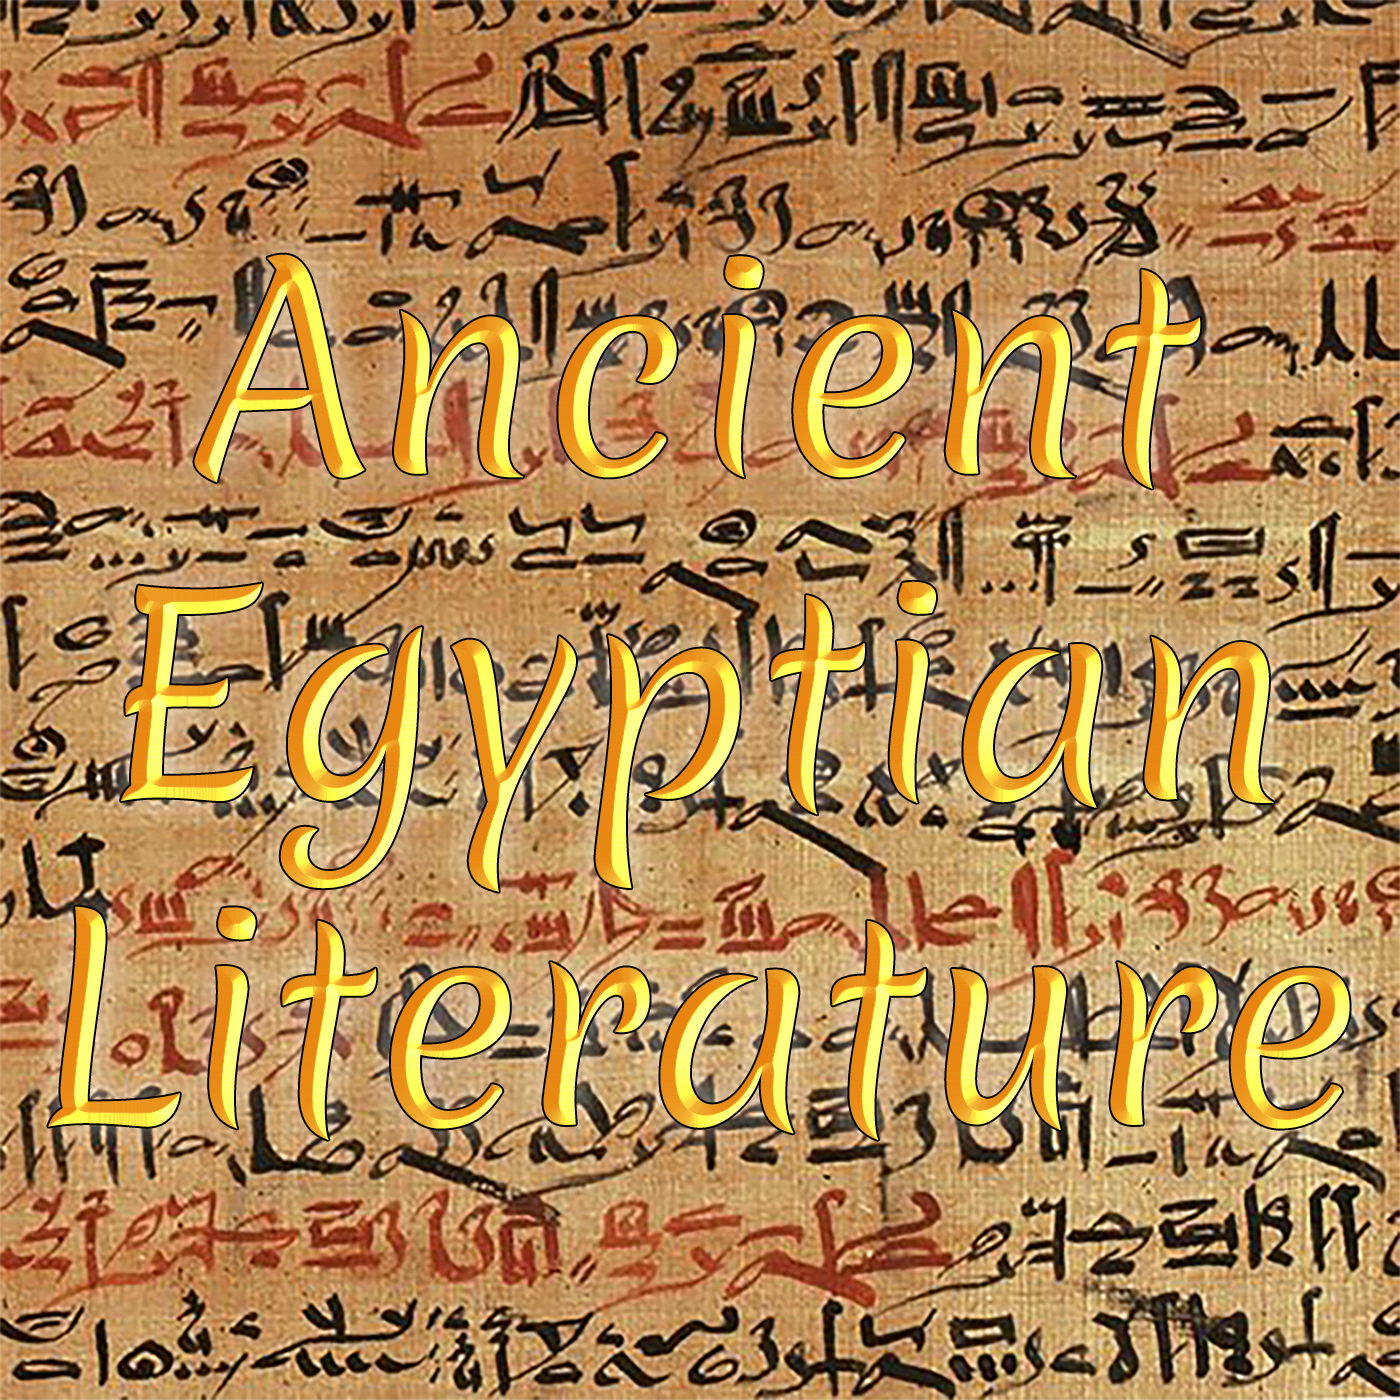 Ancient Egyptian Literature – The Tale of the Eloquent Peasant